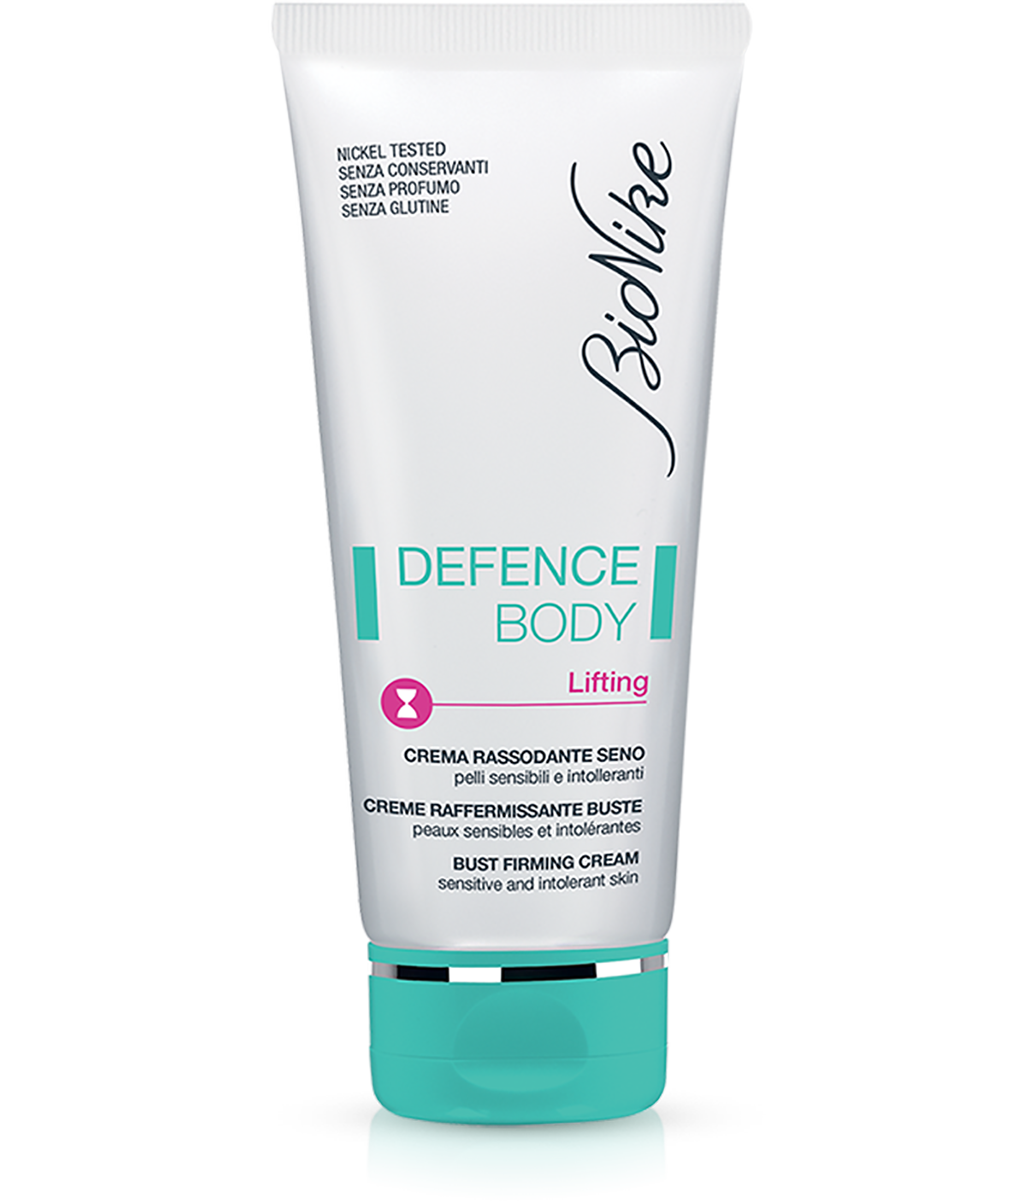 BioNike Defence Body Lifting Crema Rassodante Seno